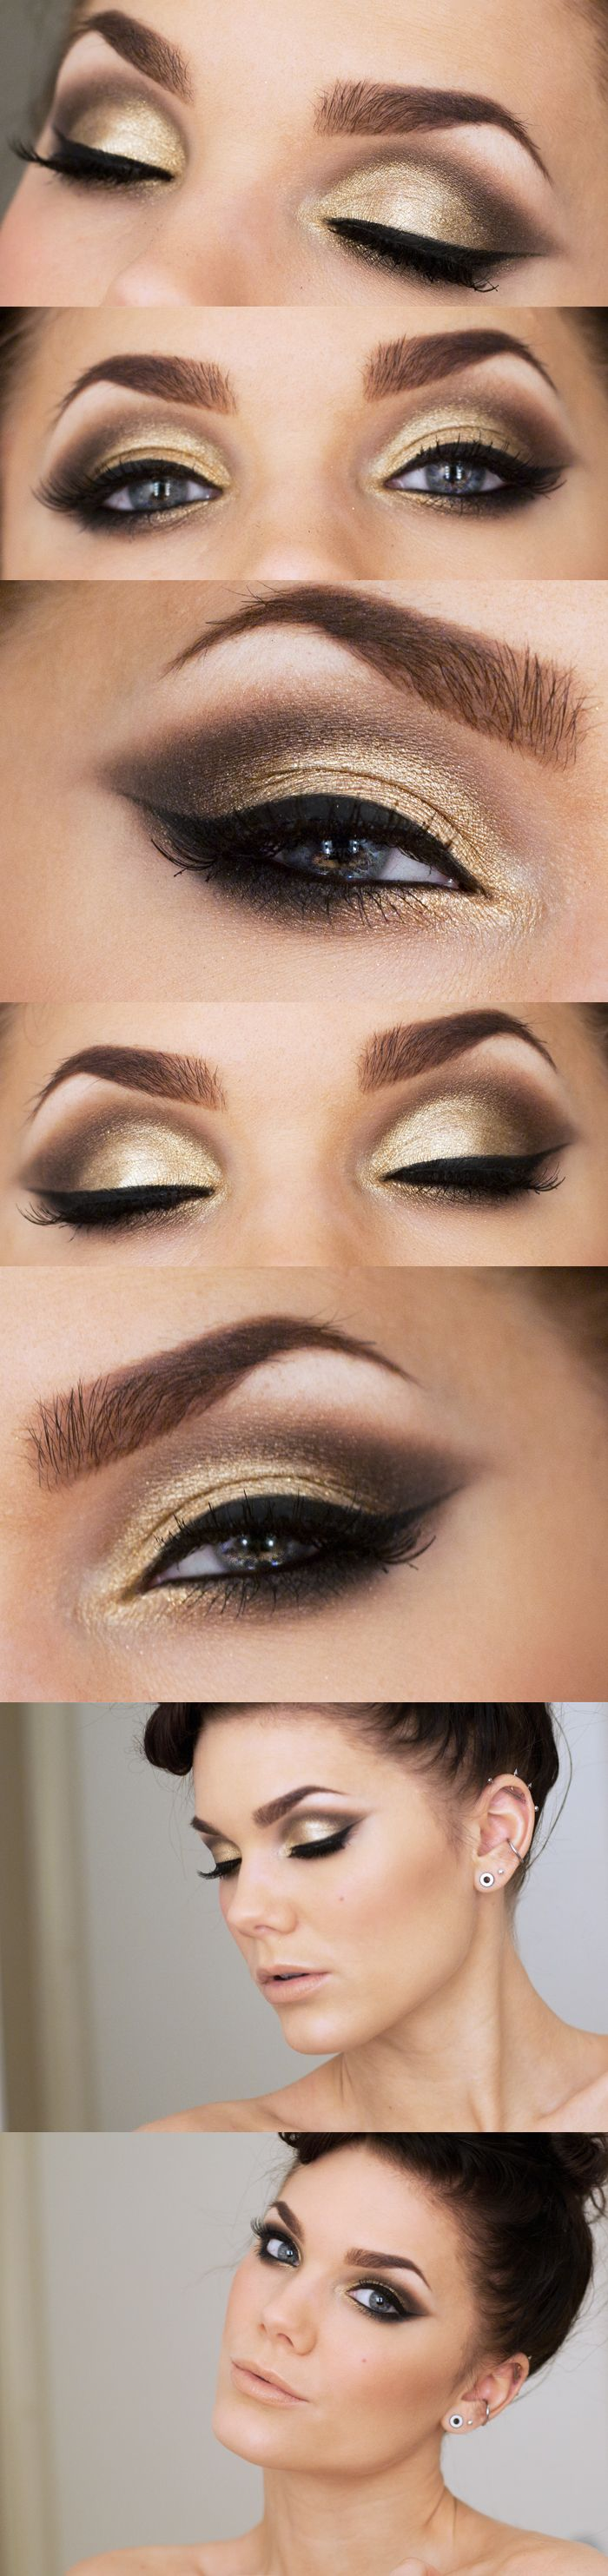 Gold and Brown makep works every time by Linda Hallberg